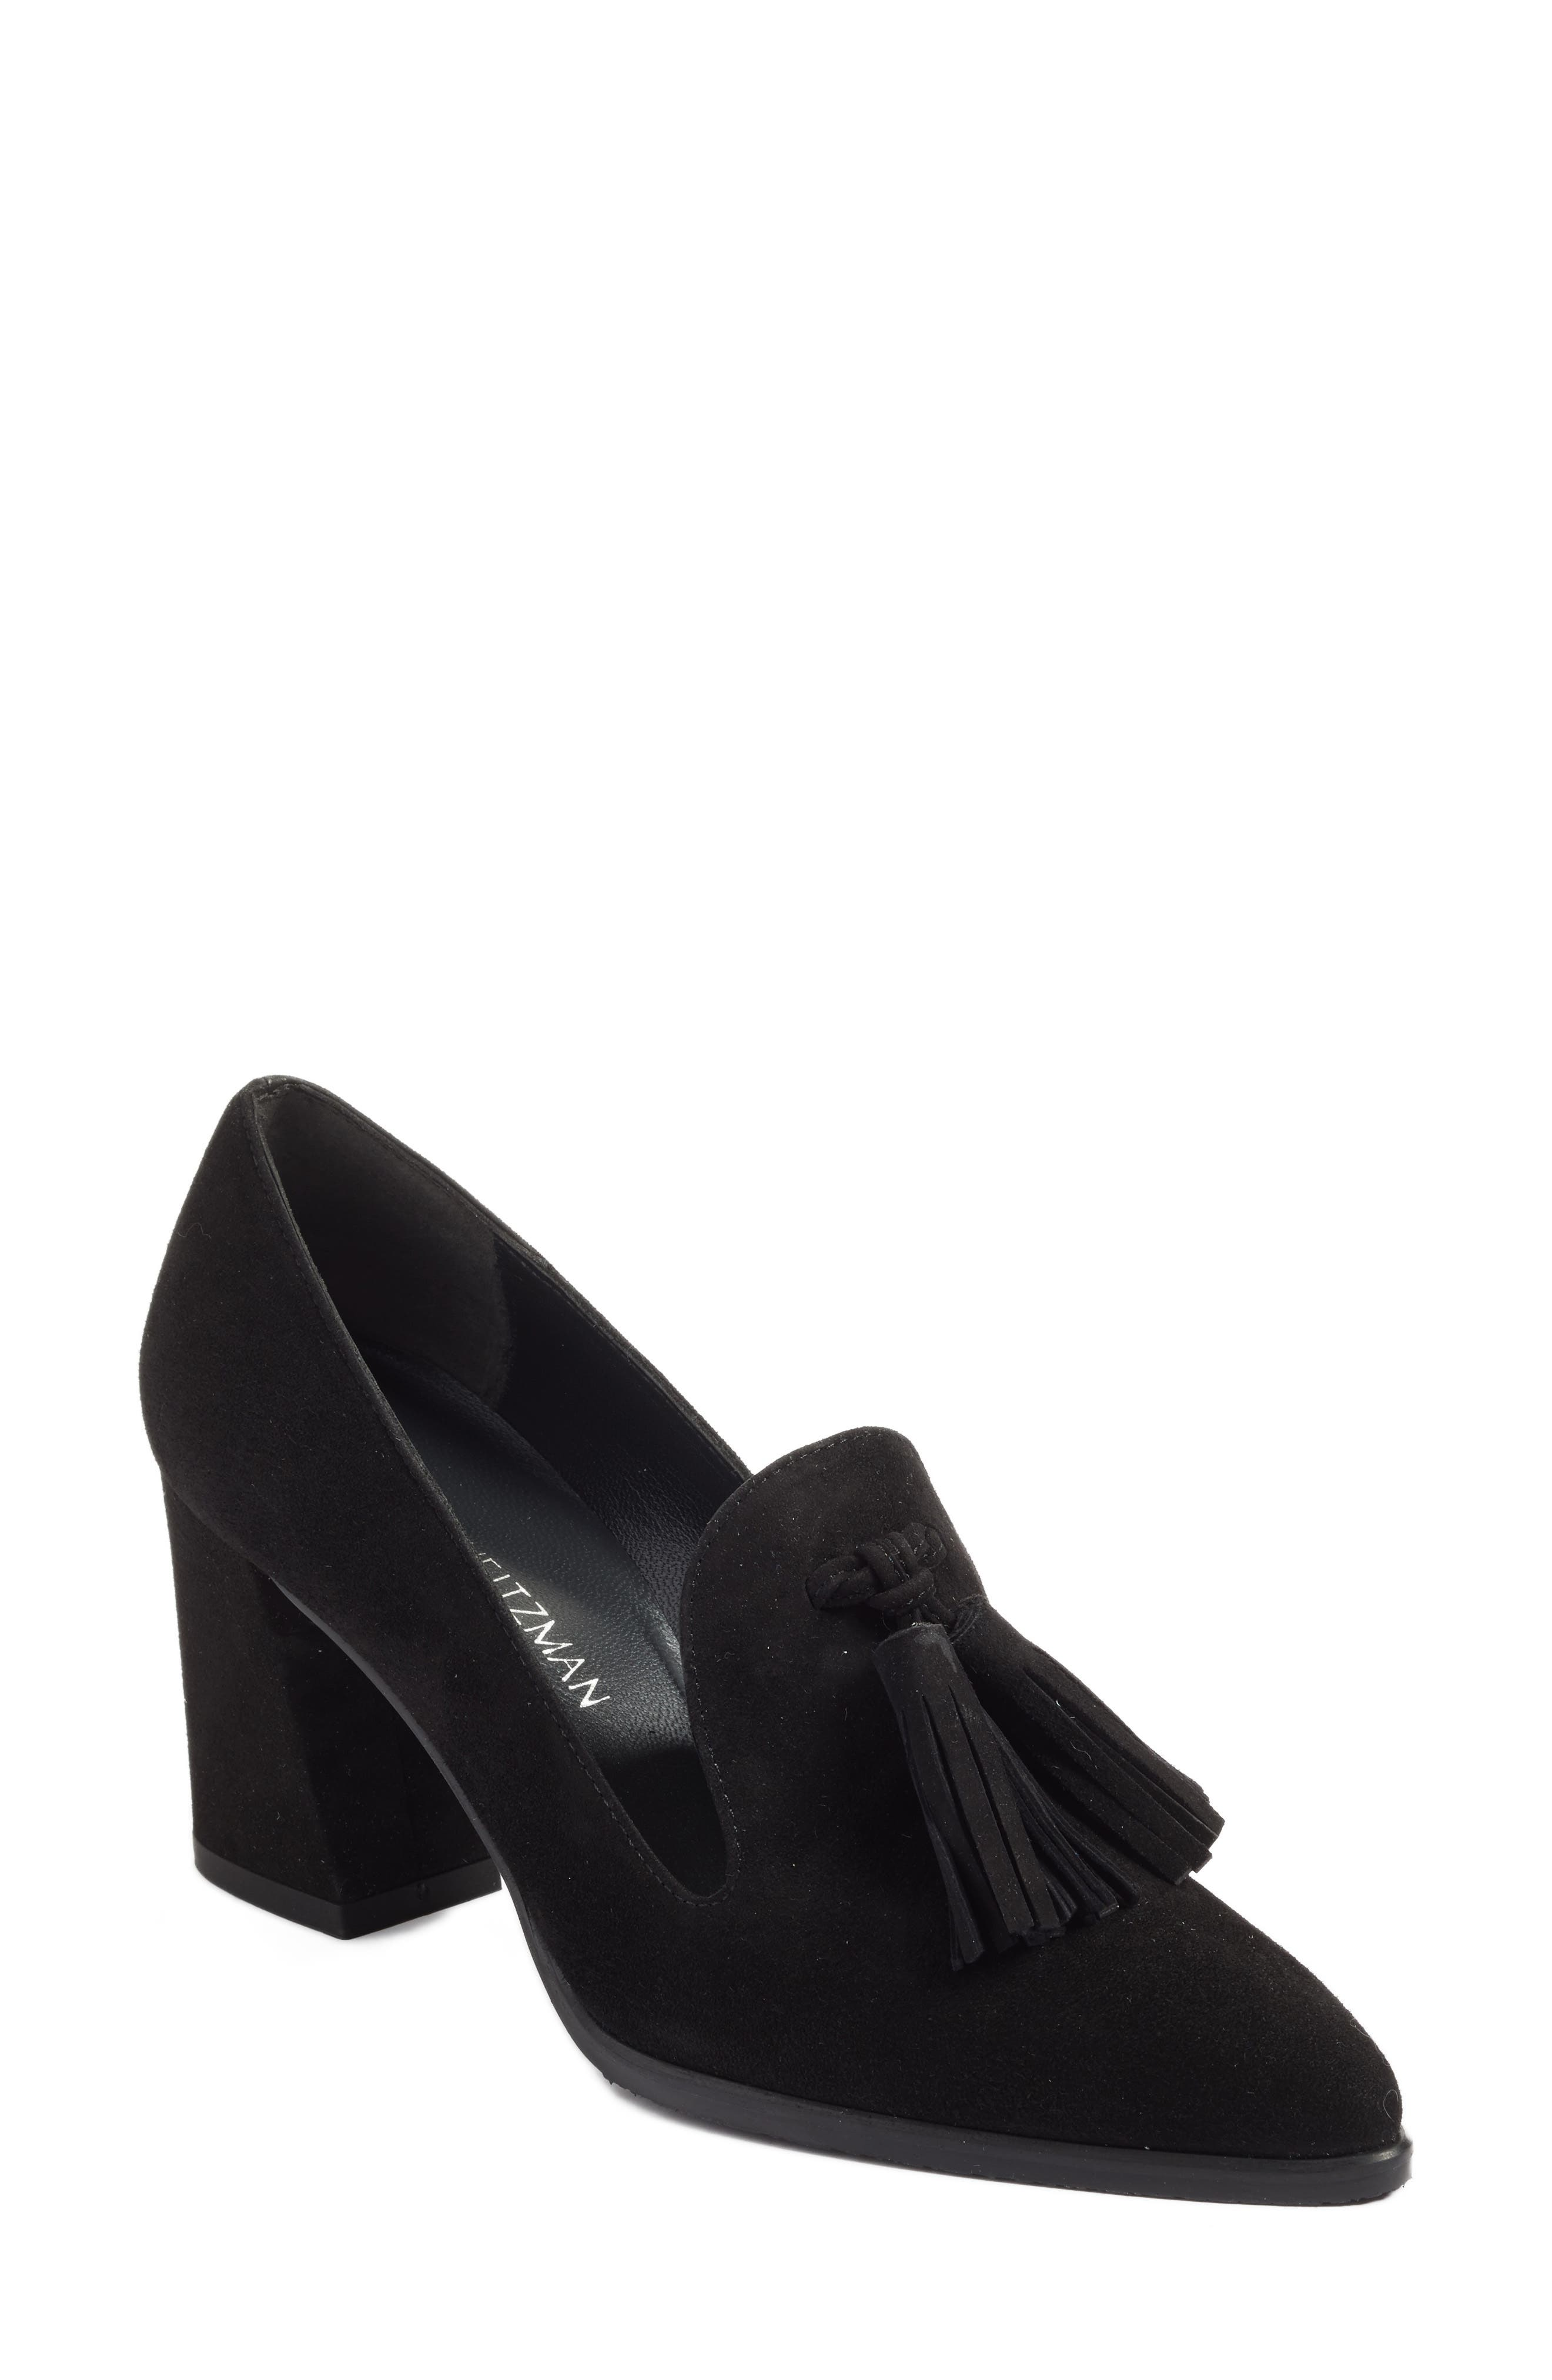 Murphy Tassel Pump,                         Main,                         color, 002